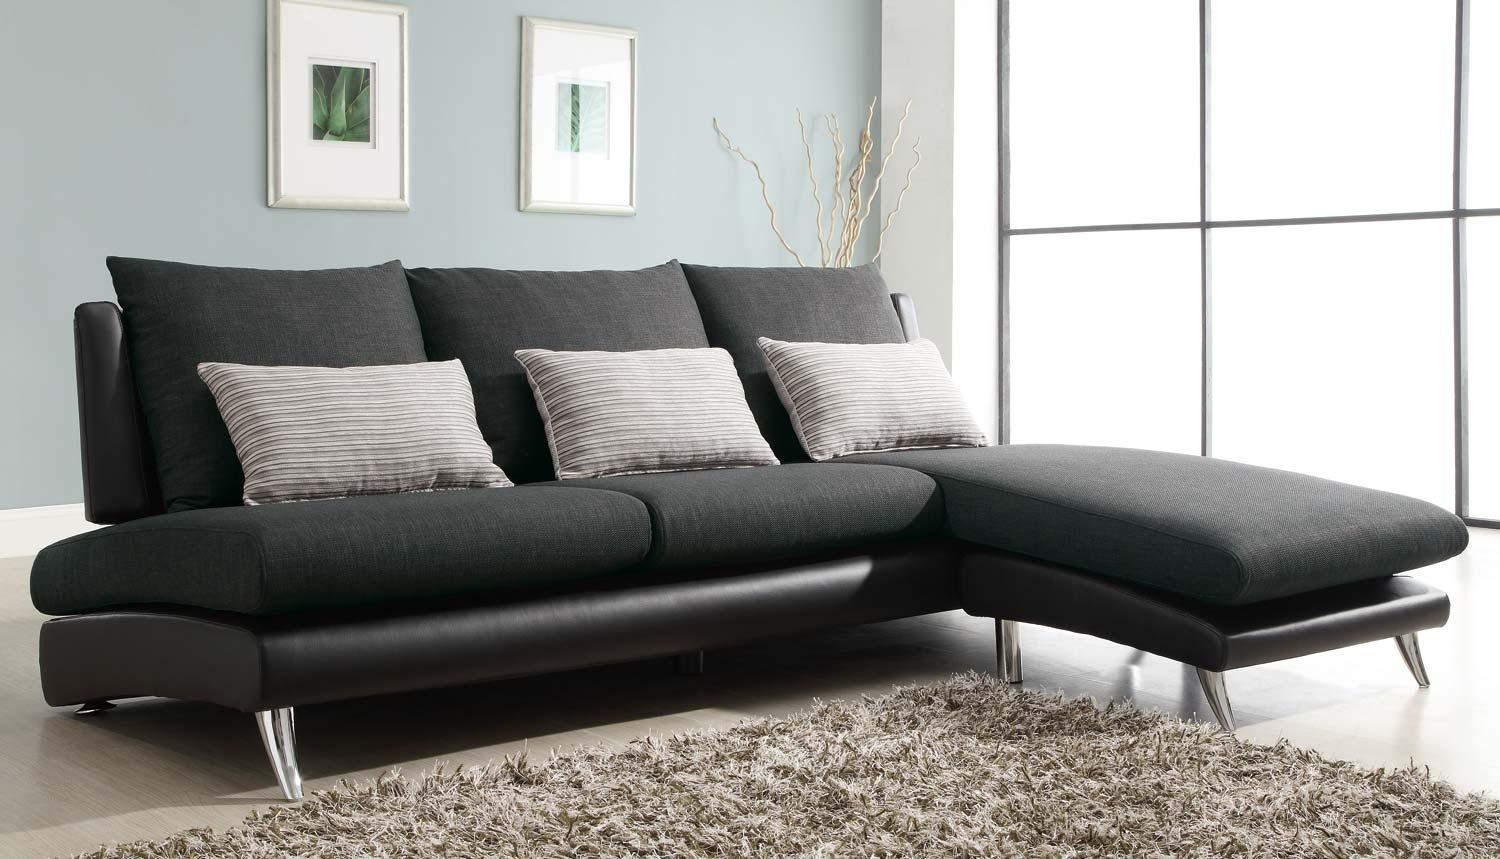 Sectional Sofas In Small Living Room – Pueblosinfronteras Within Small Black Sofas (Image 10 of 20)